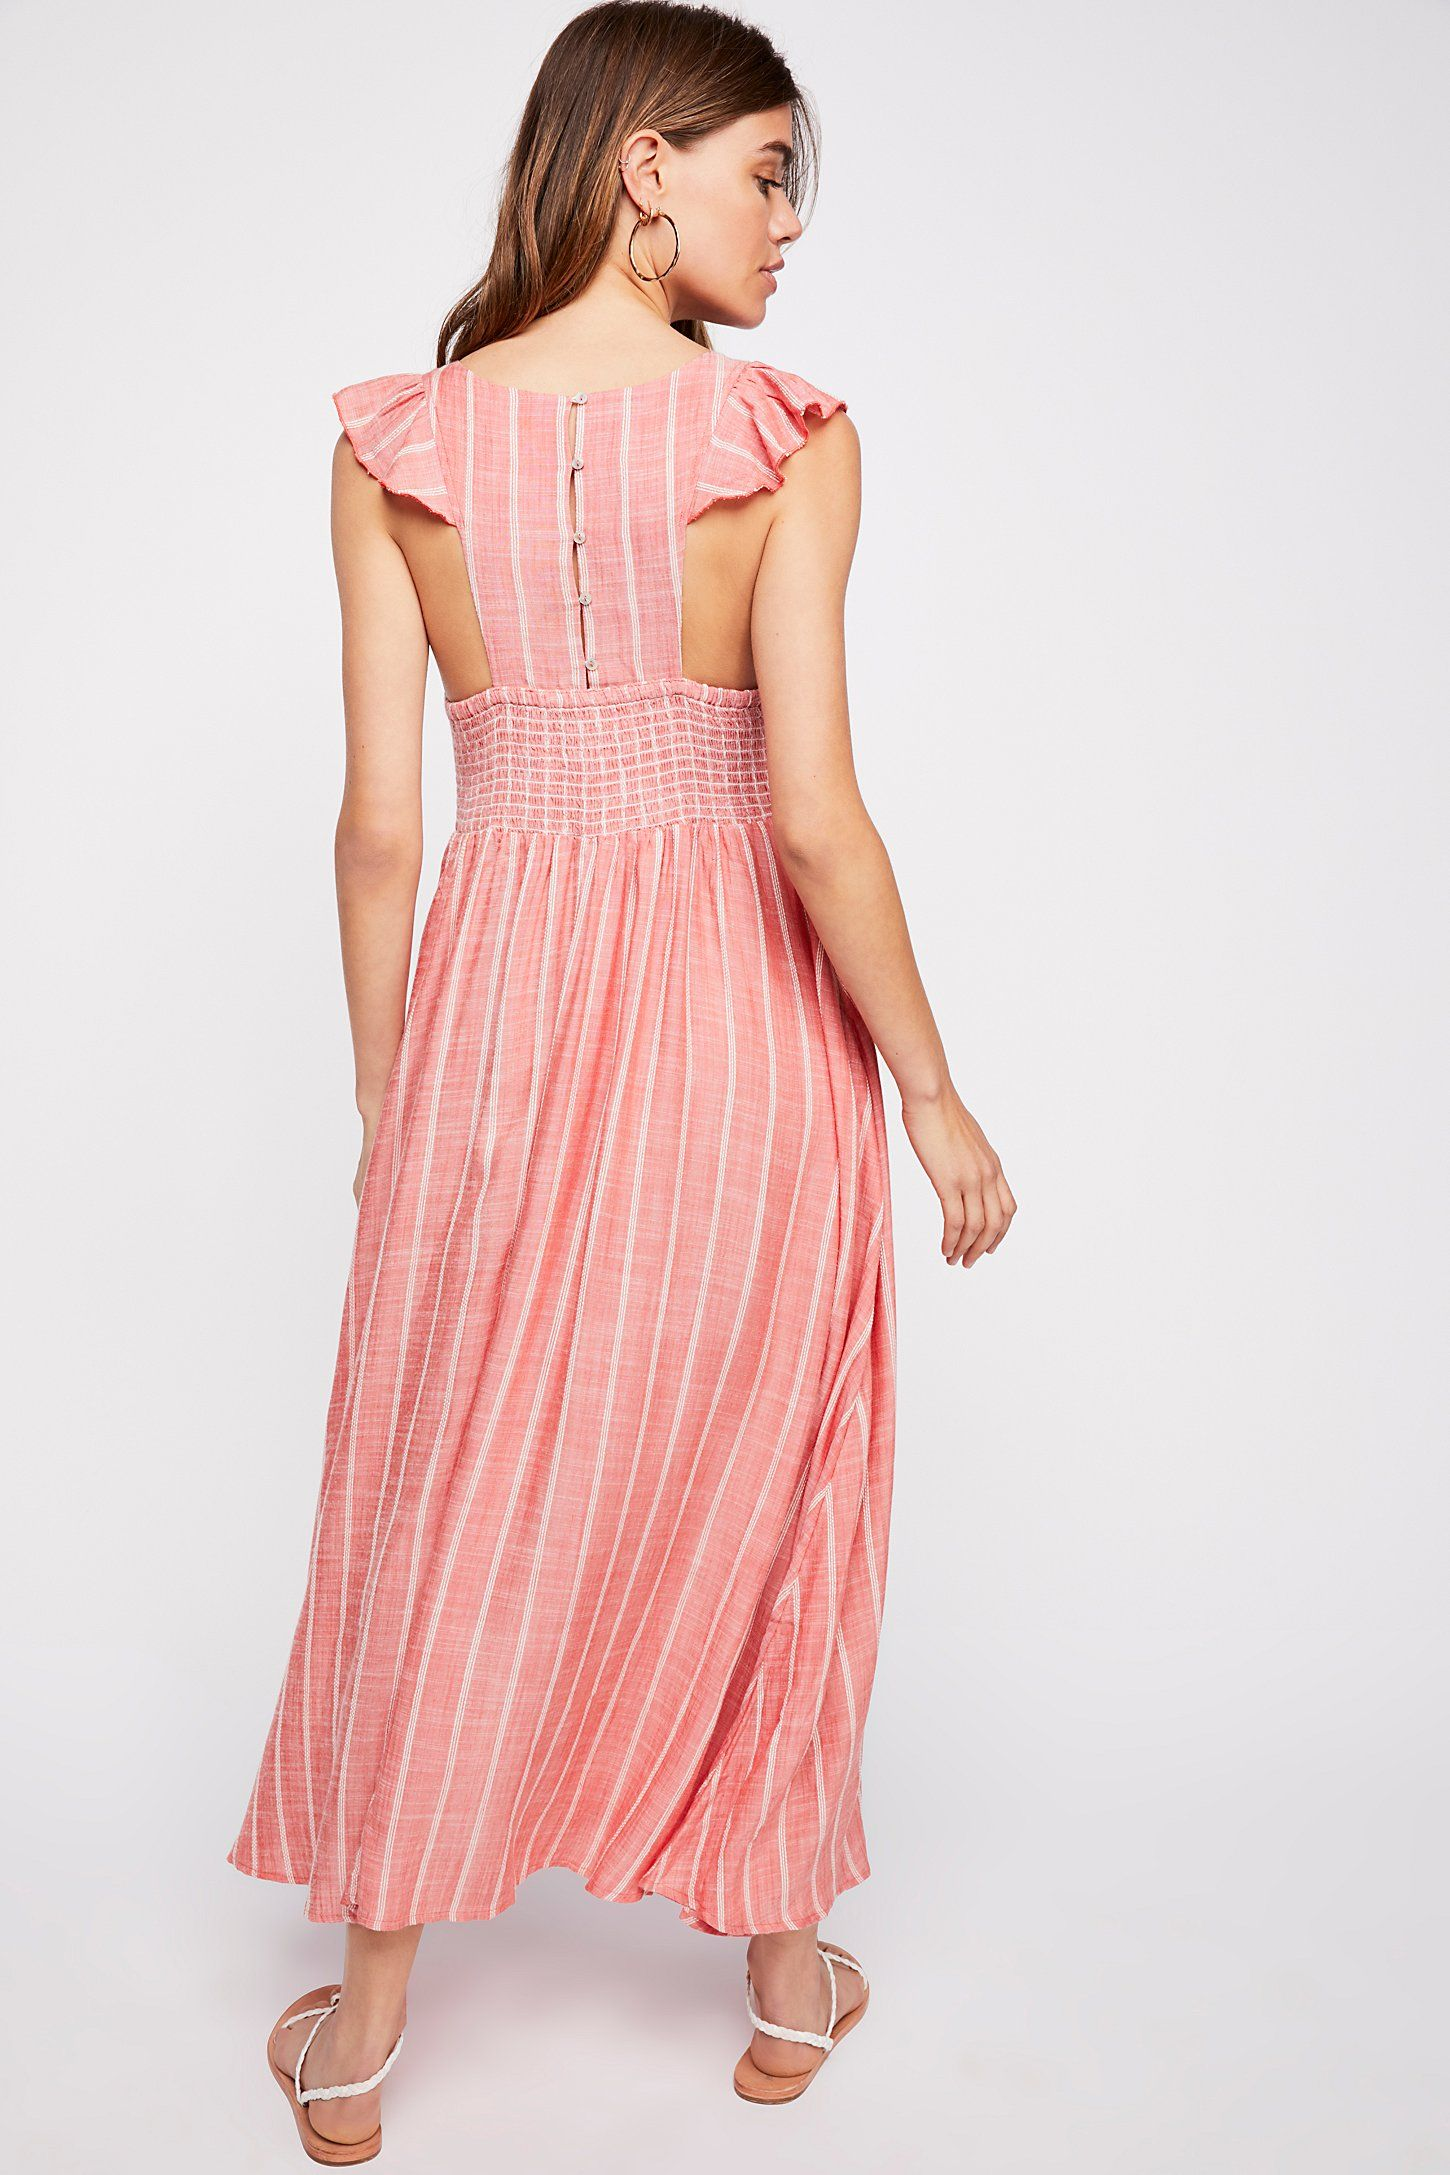 latest discount get new buy online Chambray Butterflies Midi Dress | Dresses, Red midi dress, Free ...